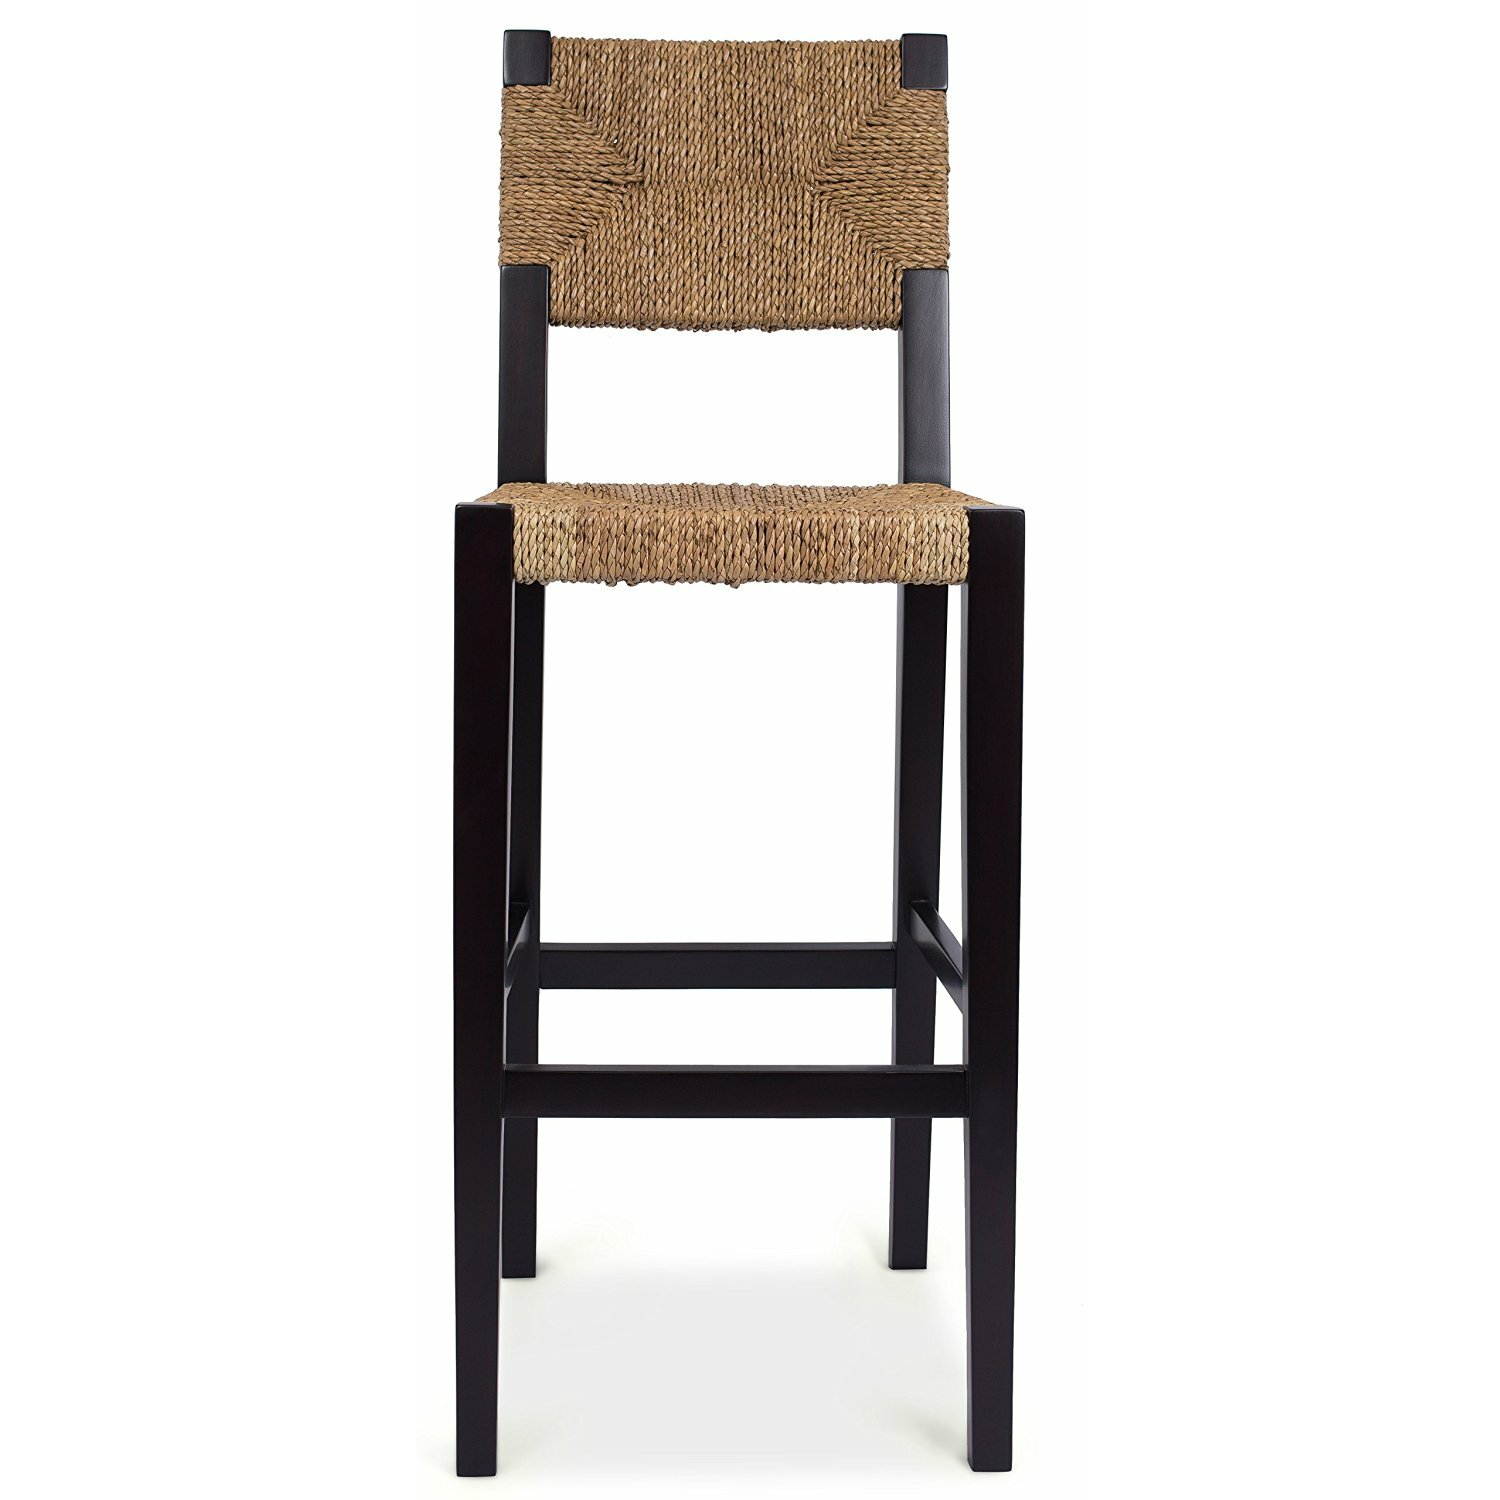 #866745 BirdRock Home Rush Weave 30 Bar Height Bar Stool Wayfair with 1500x1500 px of Recommended Tall Bar Bench 15001500 save image @ avoidforclosure.info